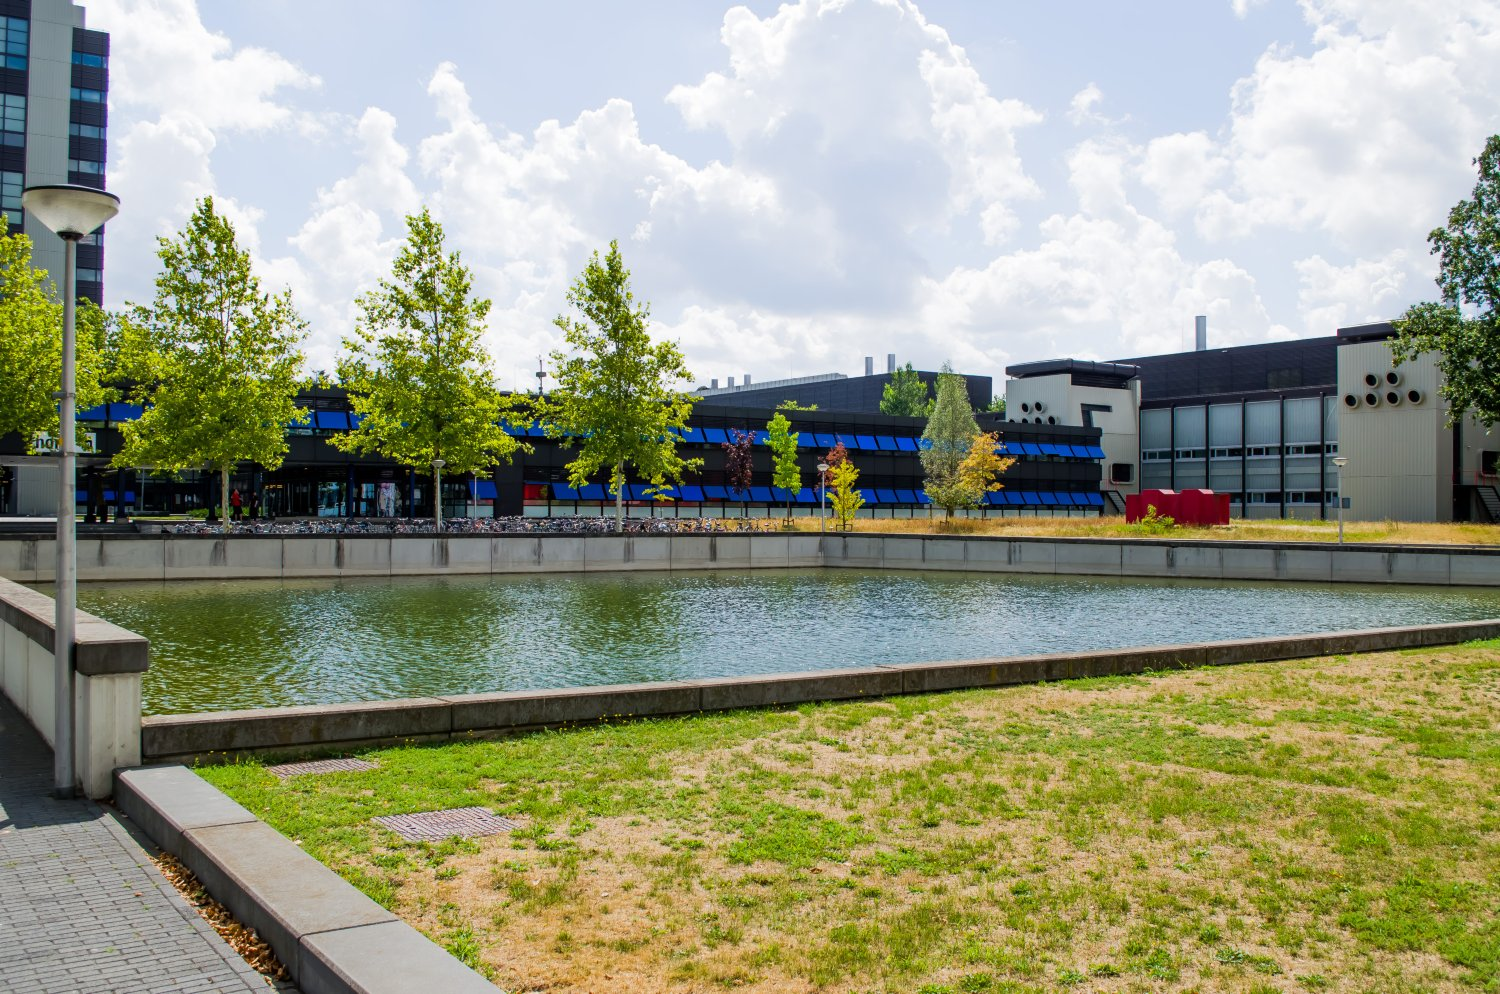 Luchtbehandelingskast Zwembad Thema S Energie Campus Facility Management